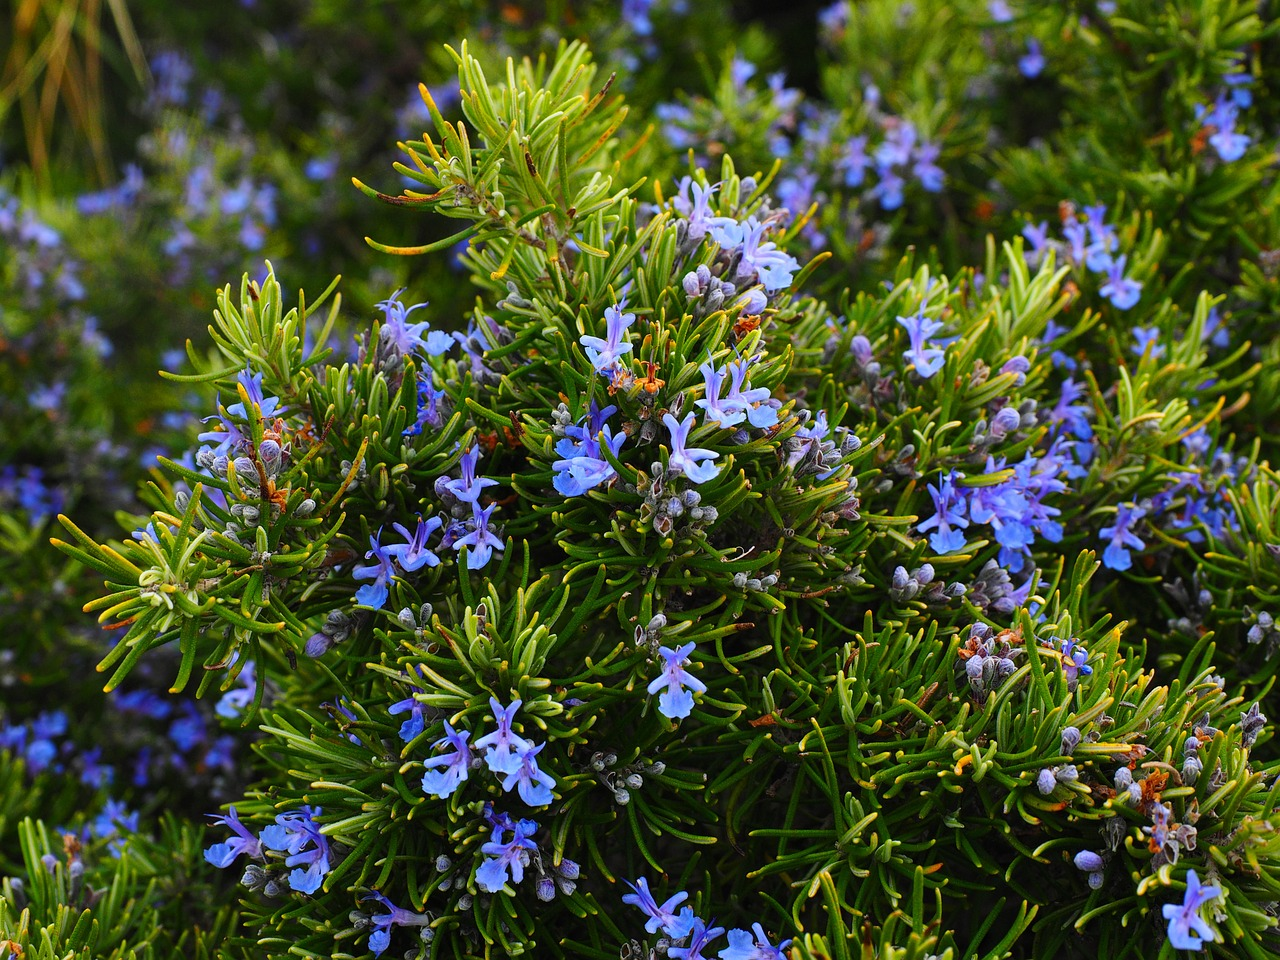 One of the most esteemed herbs in the culinary world, rosemary is also a powerhouse in traditional medicine